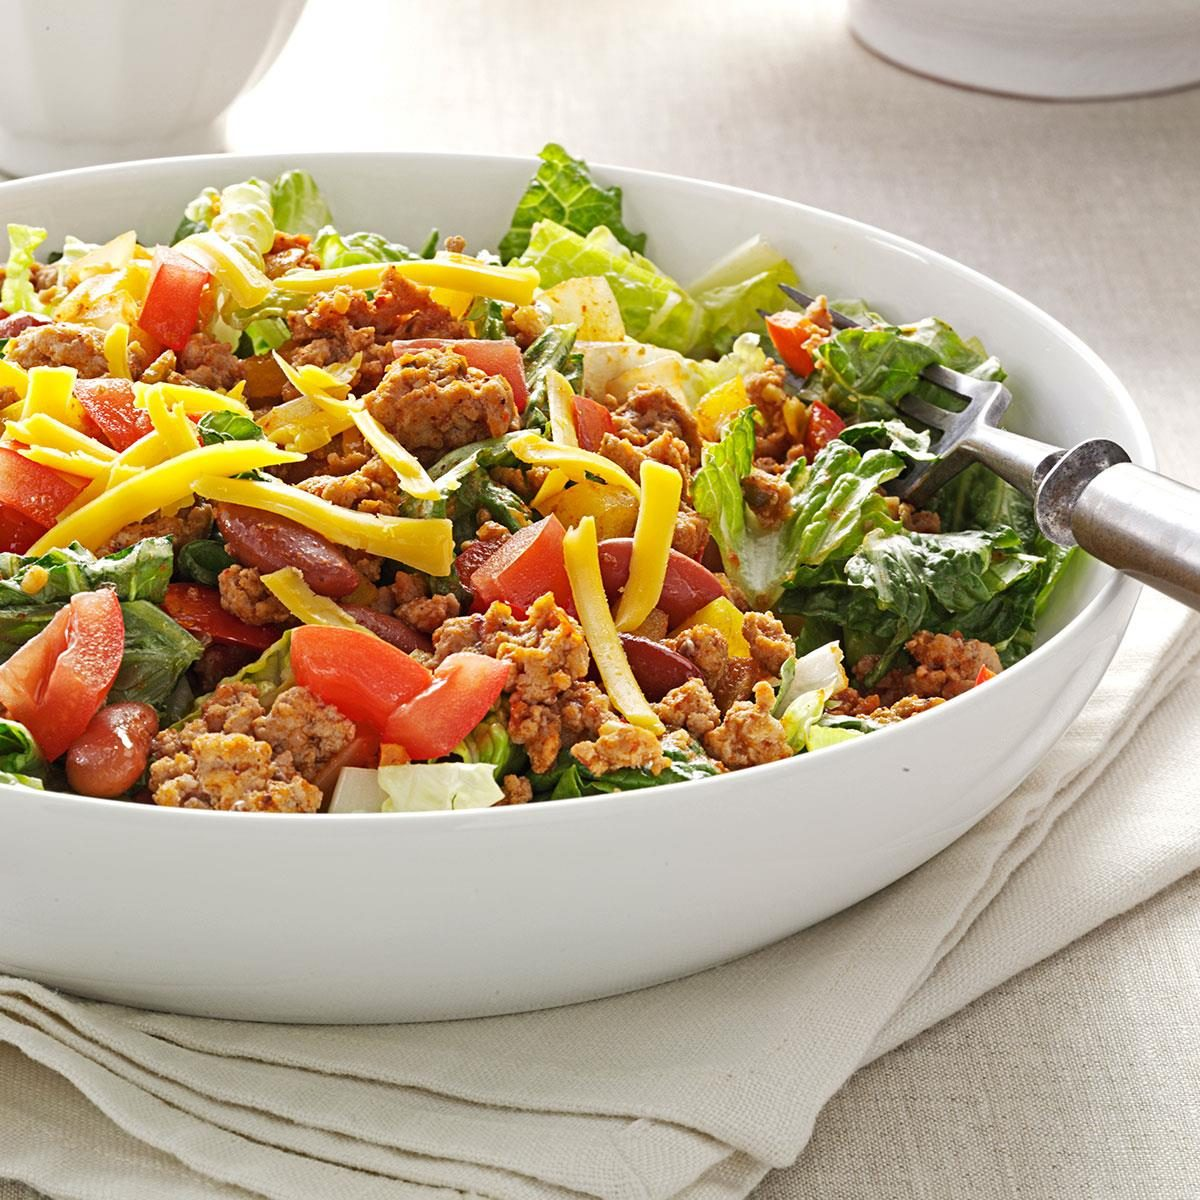 Dinner table with mexican food - Turkey Taco Salad